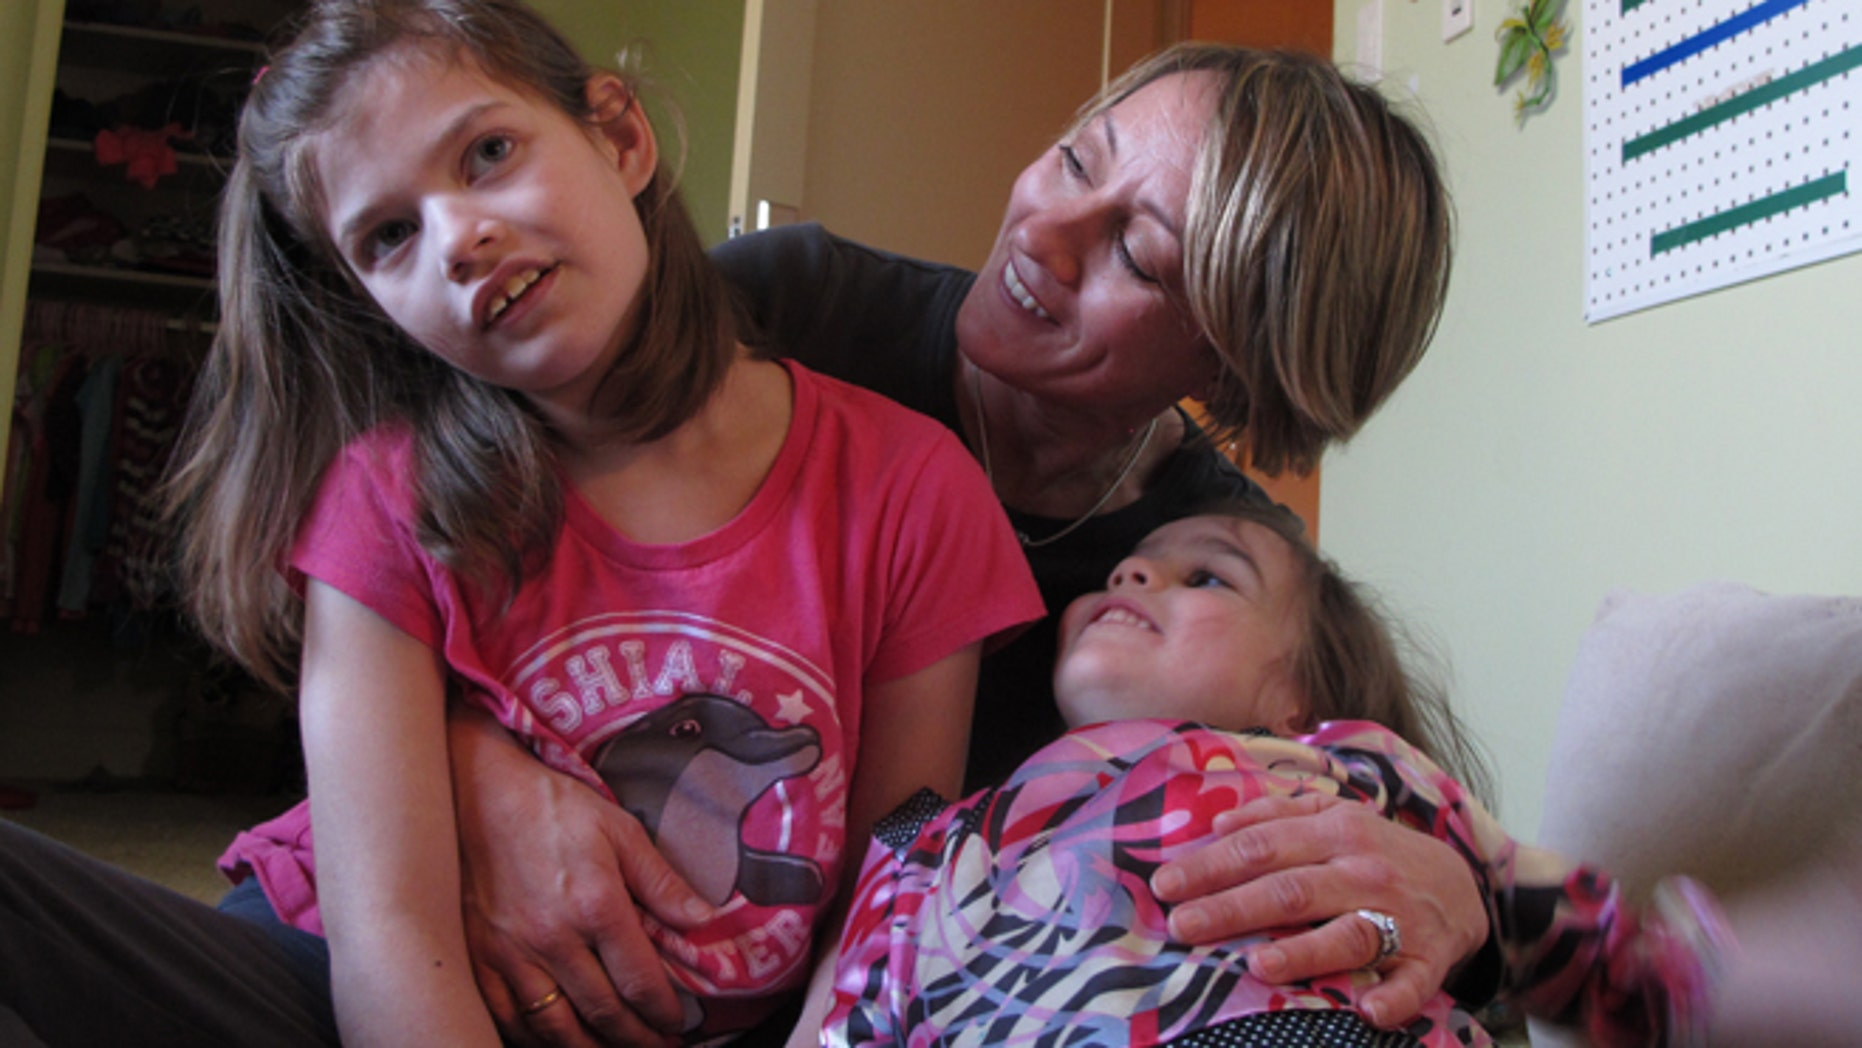 Feb. 27, 2015: Alexis Carey, left, 10, sits with her mother Clare Carey, center, and her sister Alanis Carey, right, 5, in Boise, Idaho. (AP)